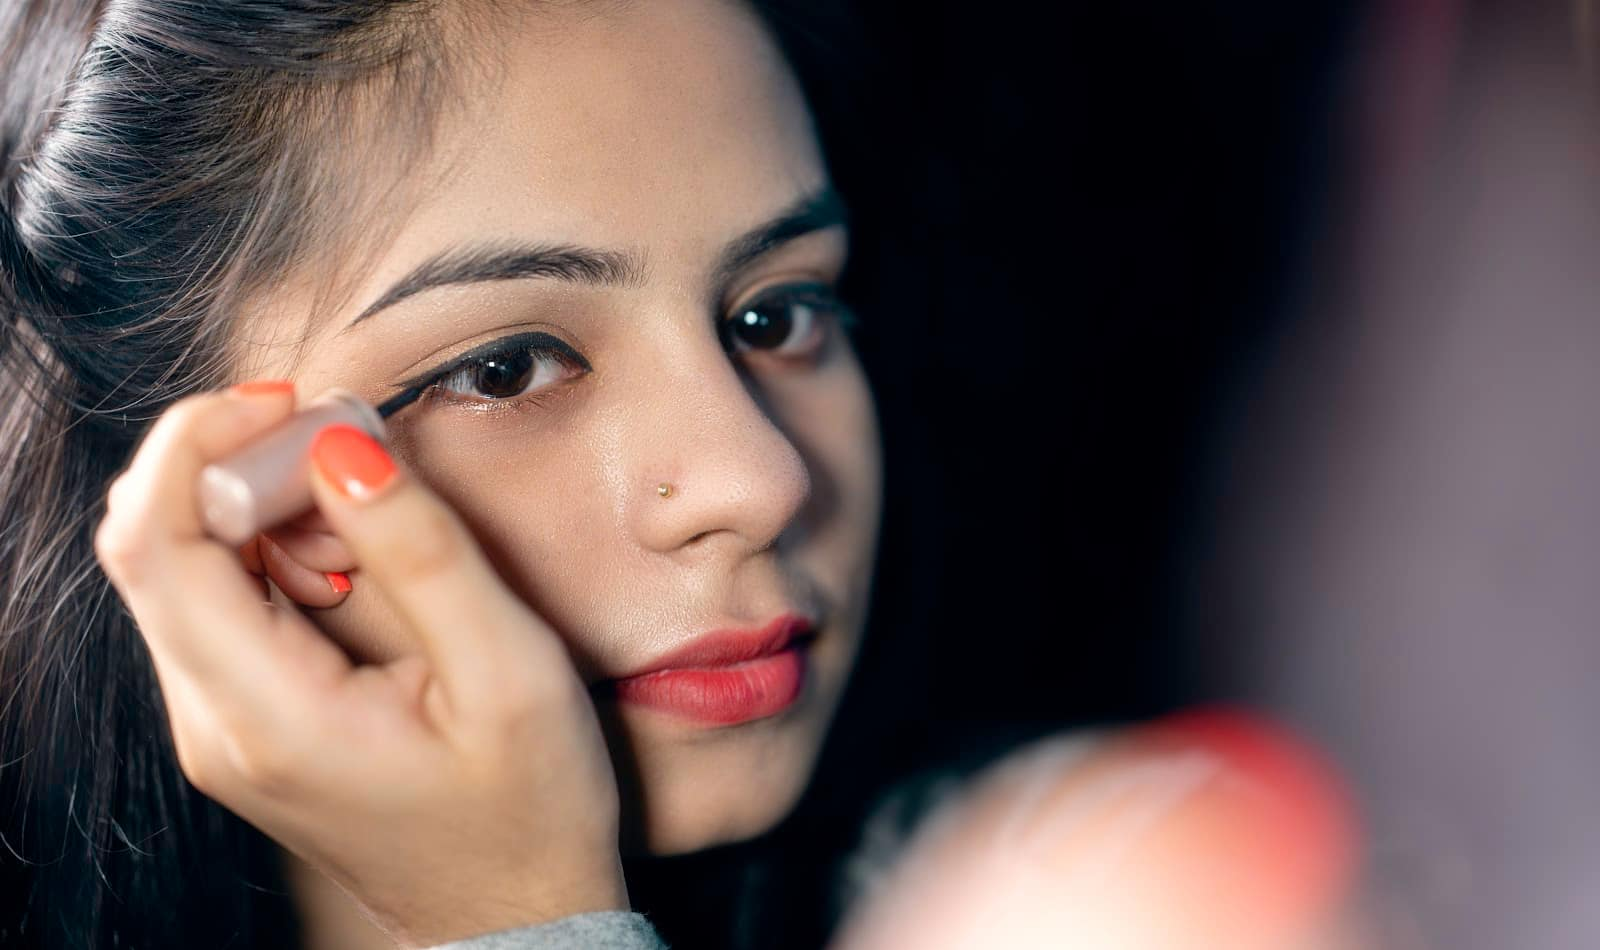 Knowing how to apply makeup to dry skin the right way can mean the difference between a dewy finish or a cake-like mess. Check out our tips for success!